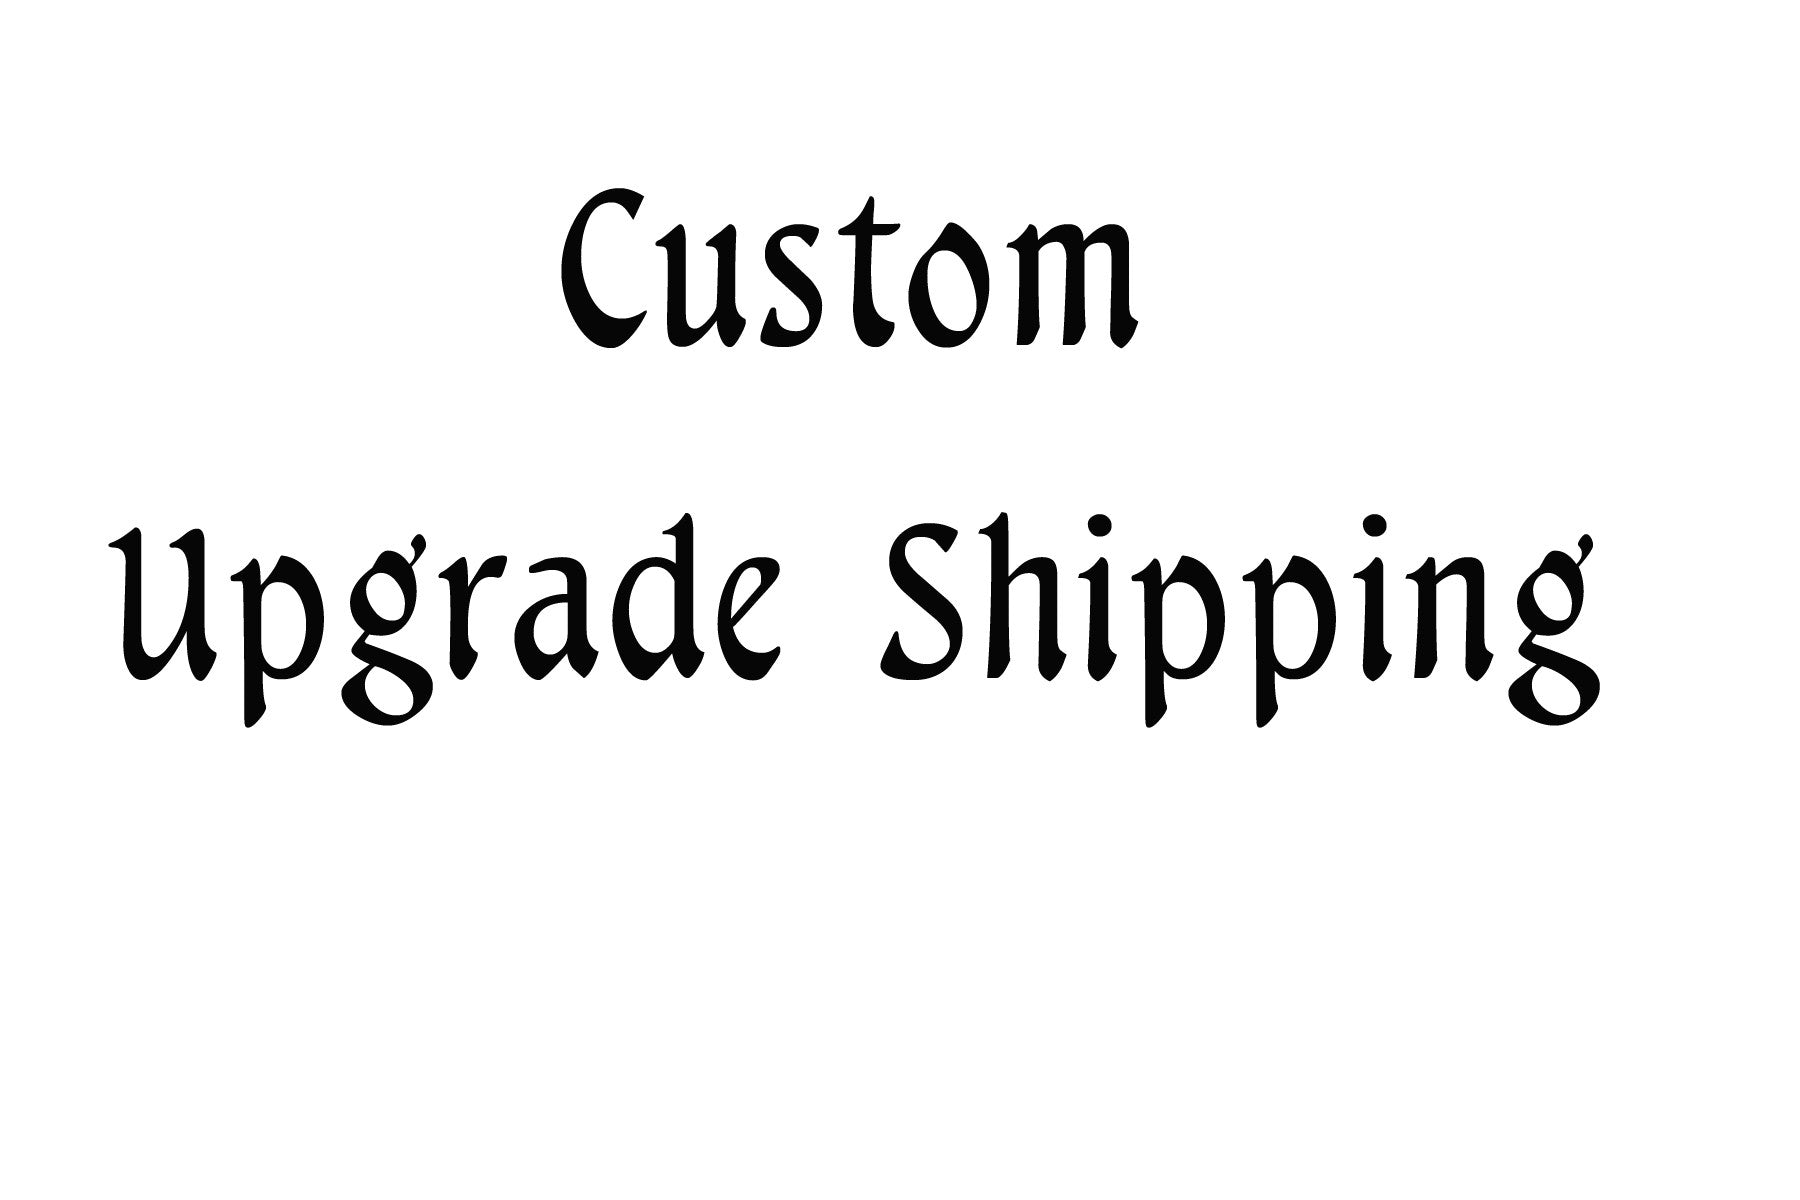 Overnight Upgrade to shipping - Vinyl Boutique Shop